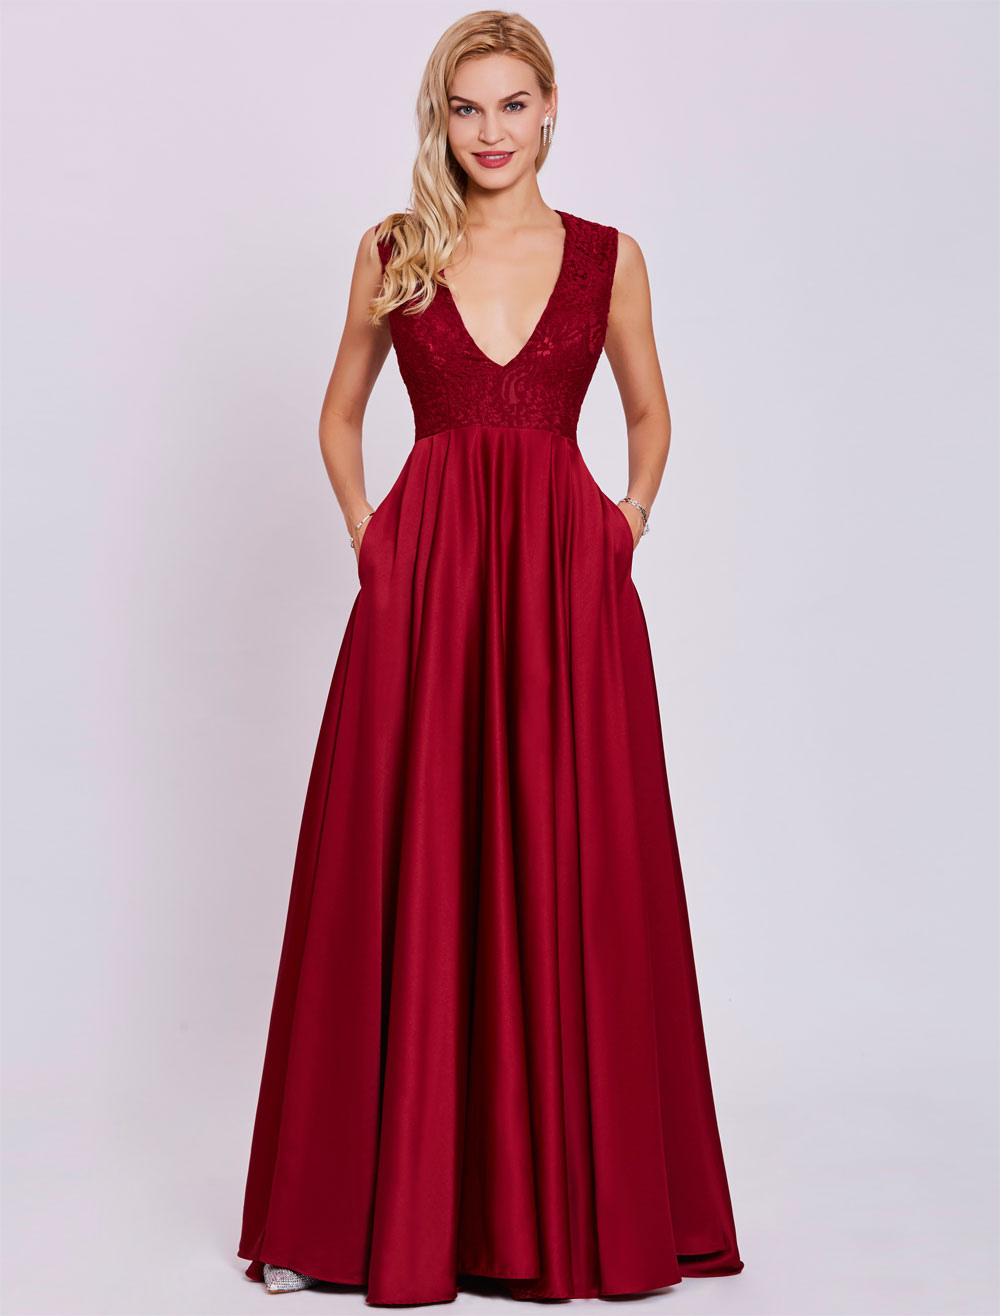 Prom Dresses Long Burgundy V Neck Satin Evening Gown Pleated Floor Length Maxi Formal Dress